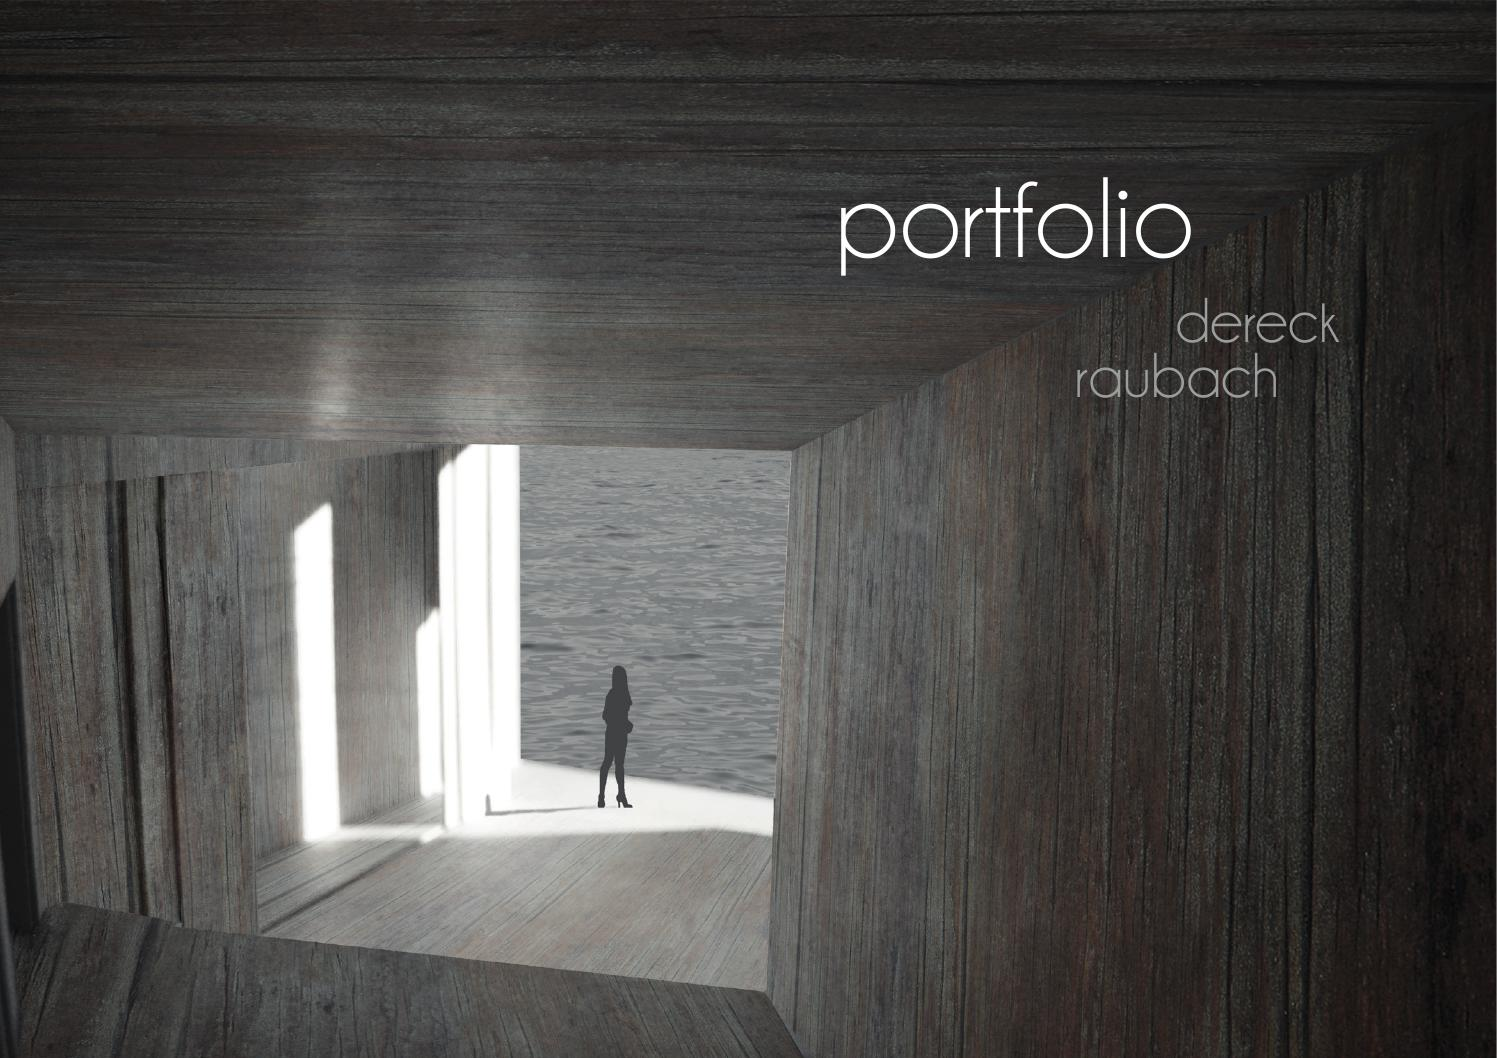 architecture portfolios and thesis by geoff eberle issuu